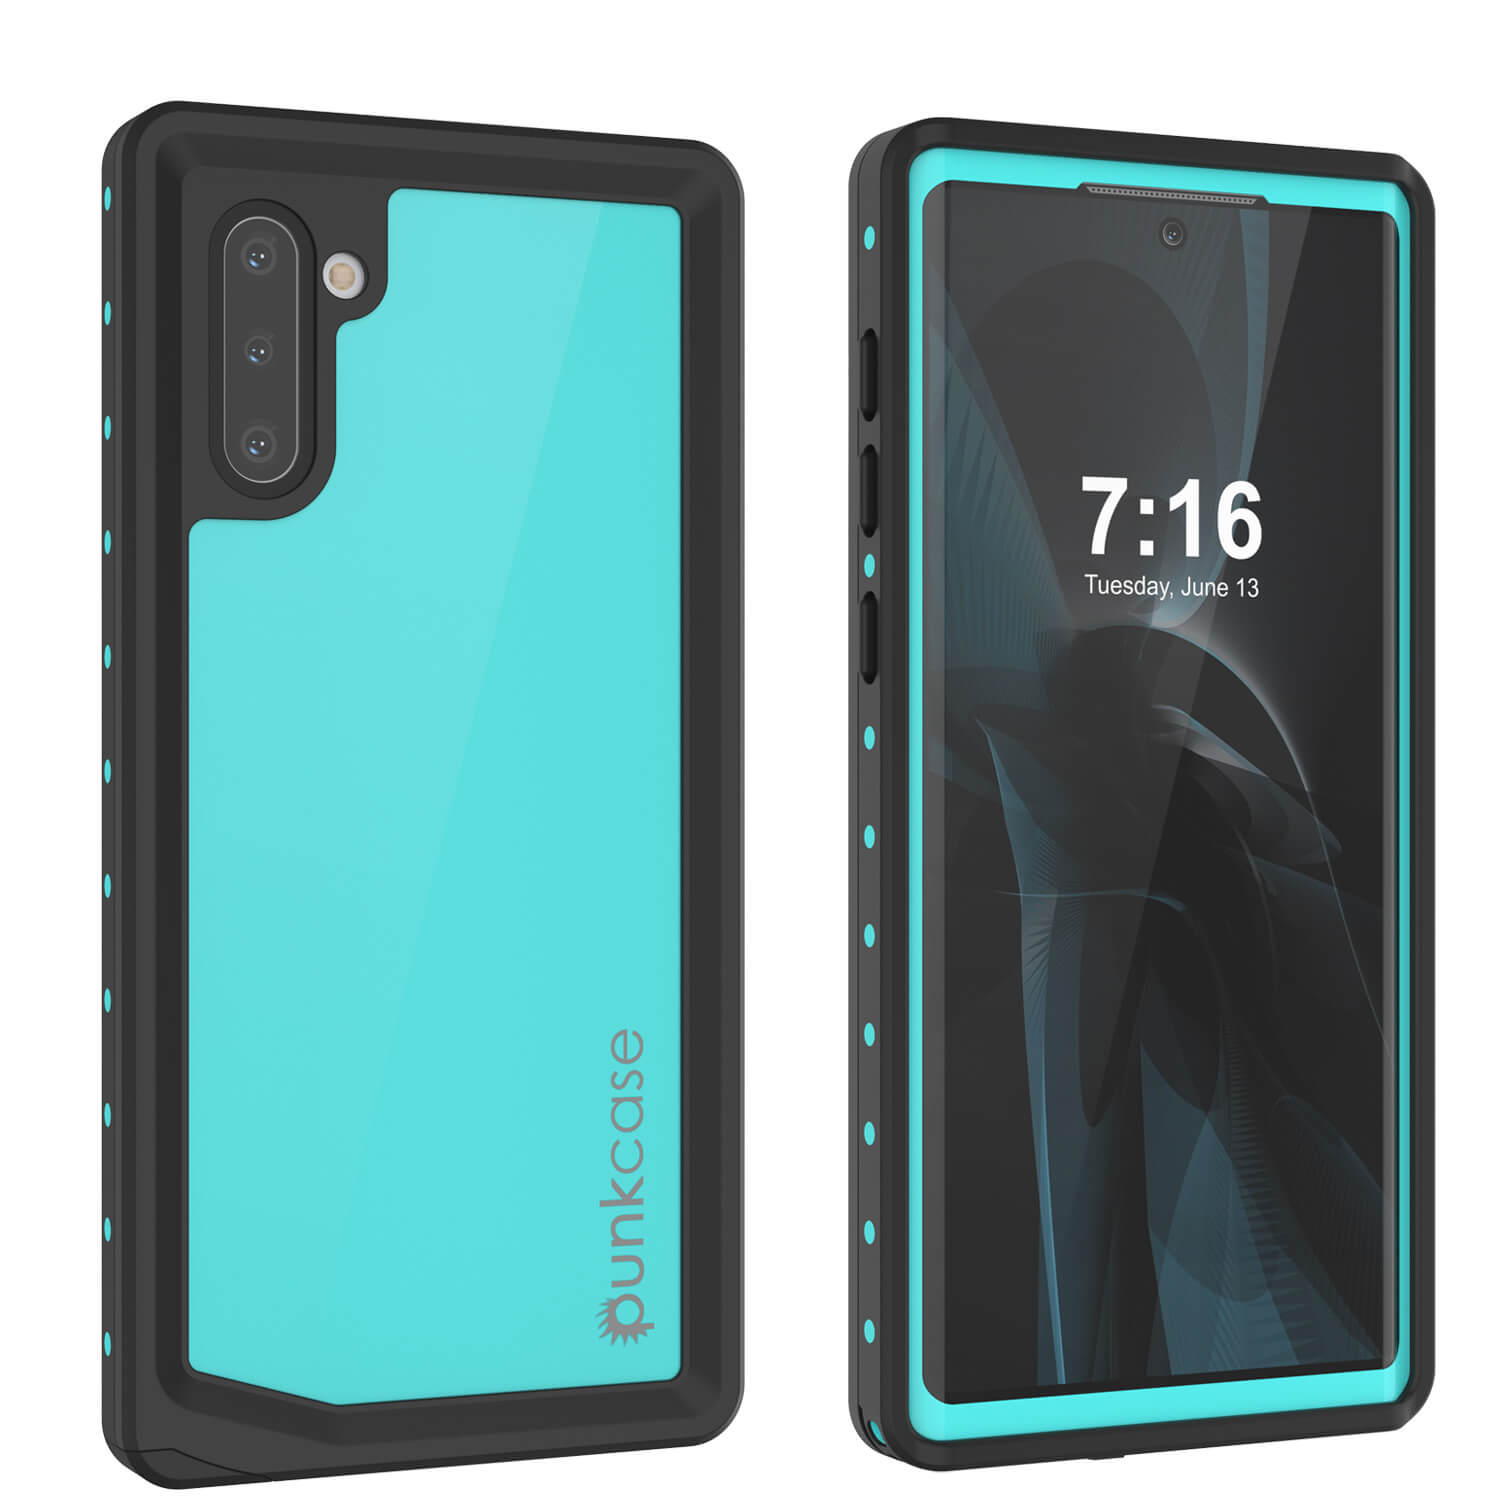 Galaxy Note 10 Waterproof Case, Punkcase Studstar Series Teal Thin Armor Cover